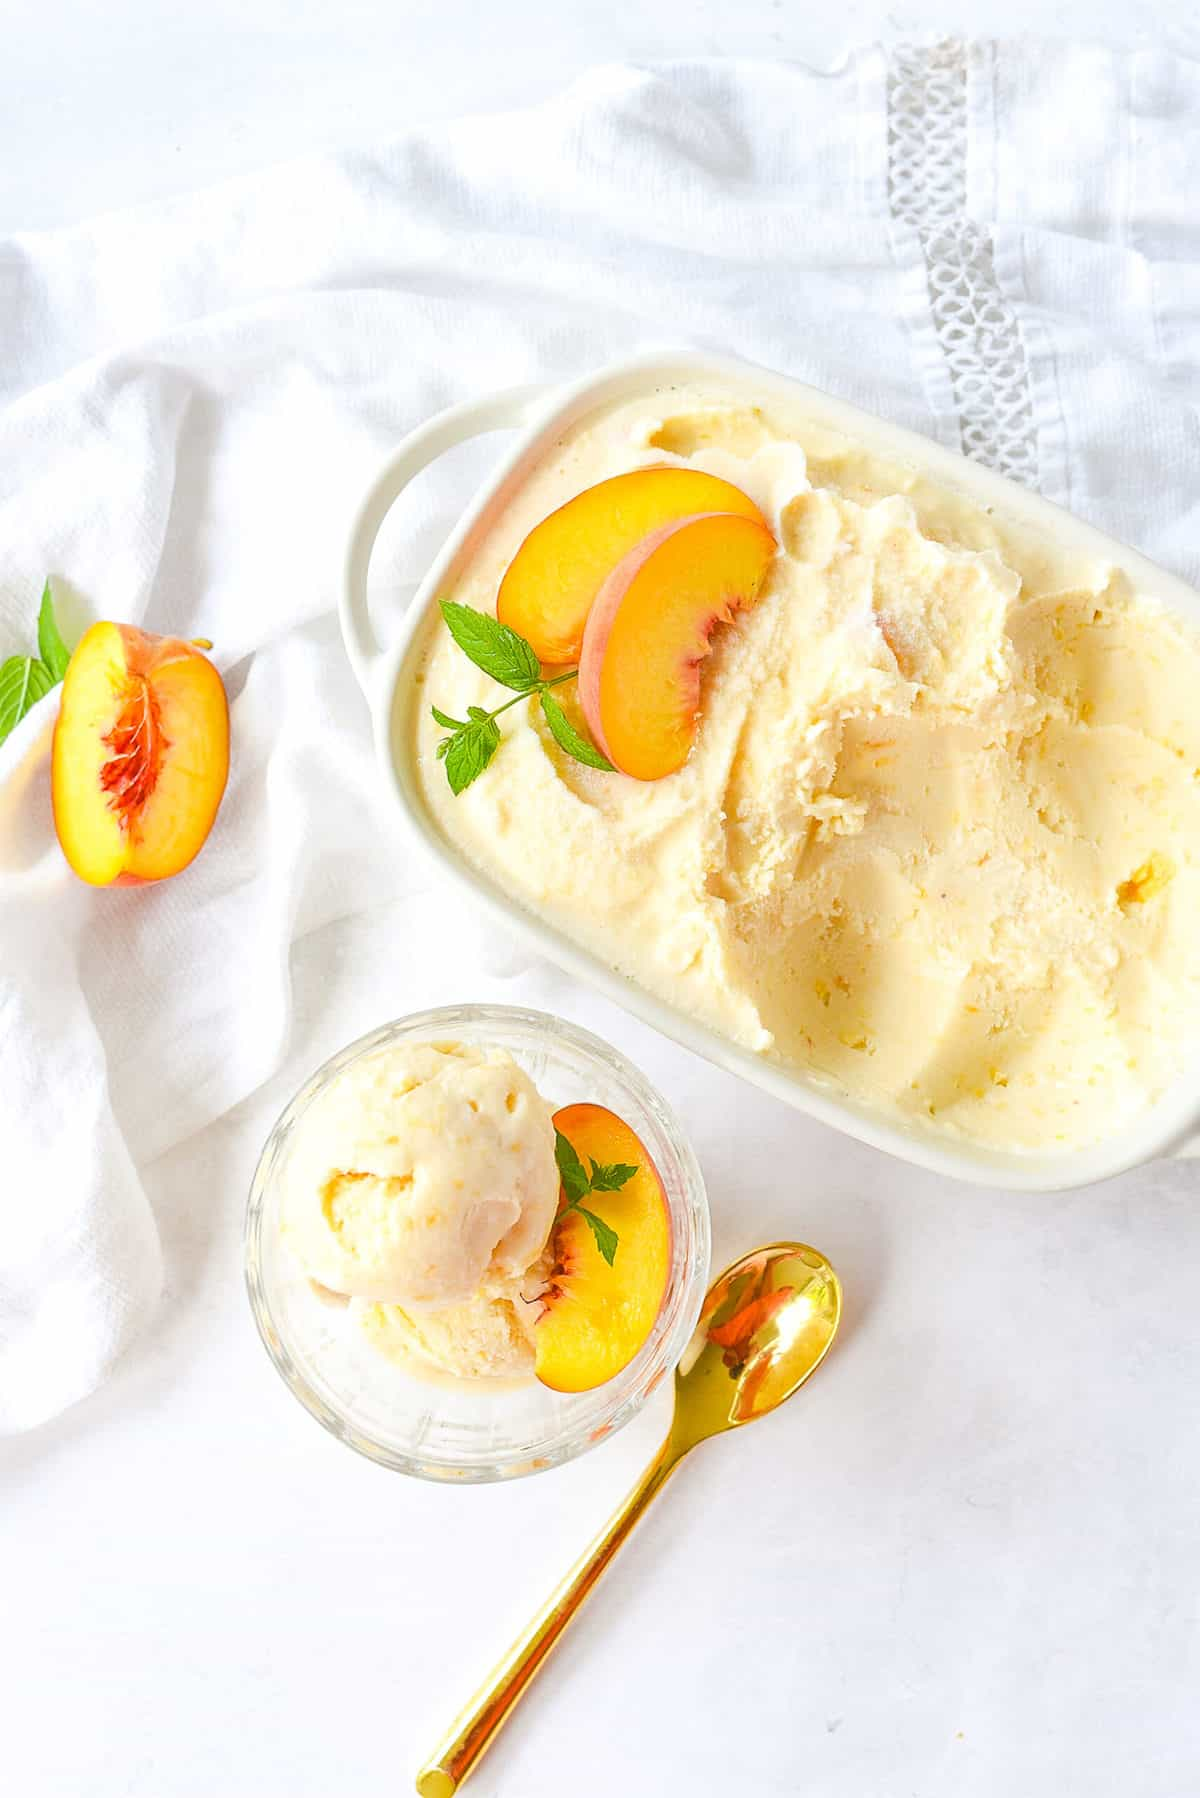 dish of peach ice cream and a spoon